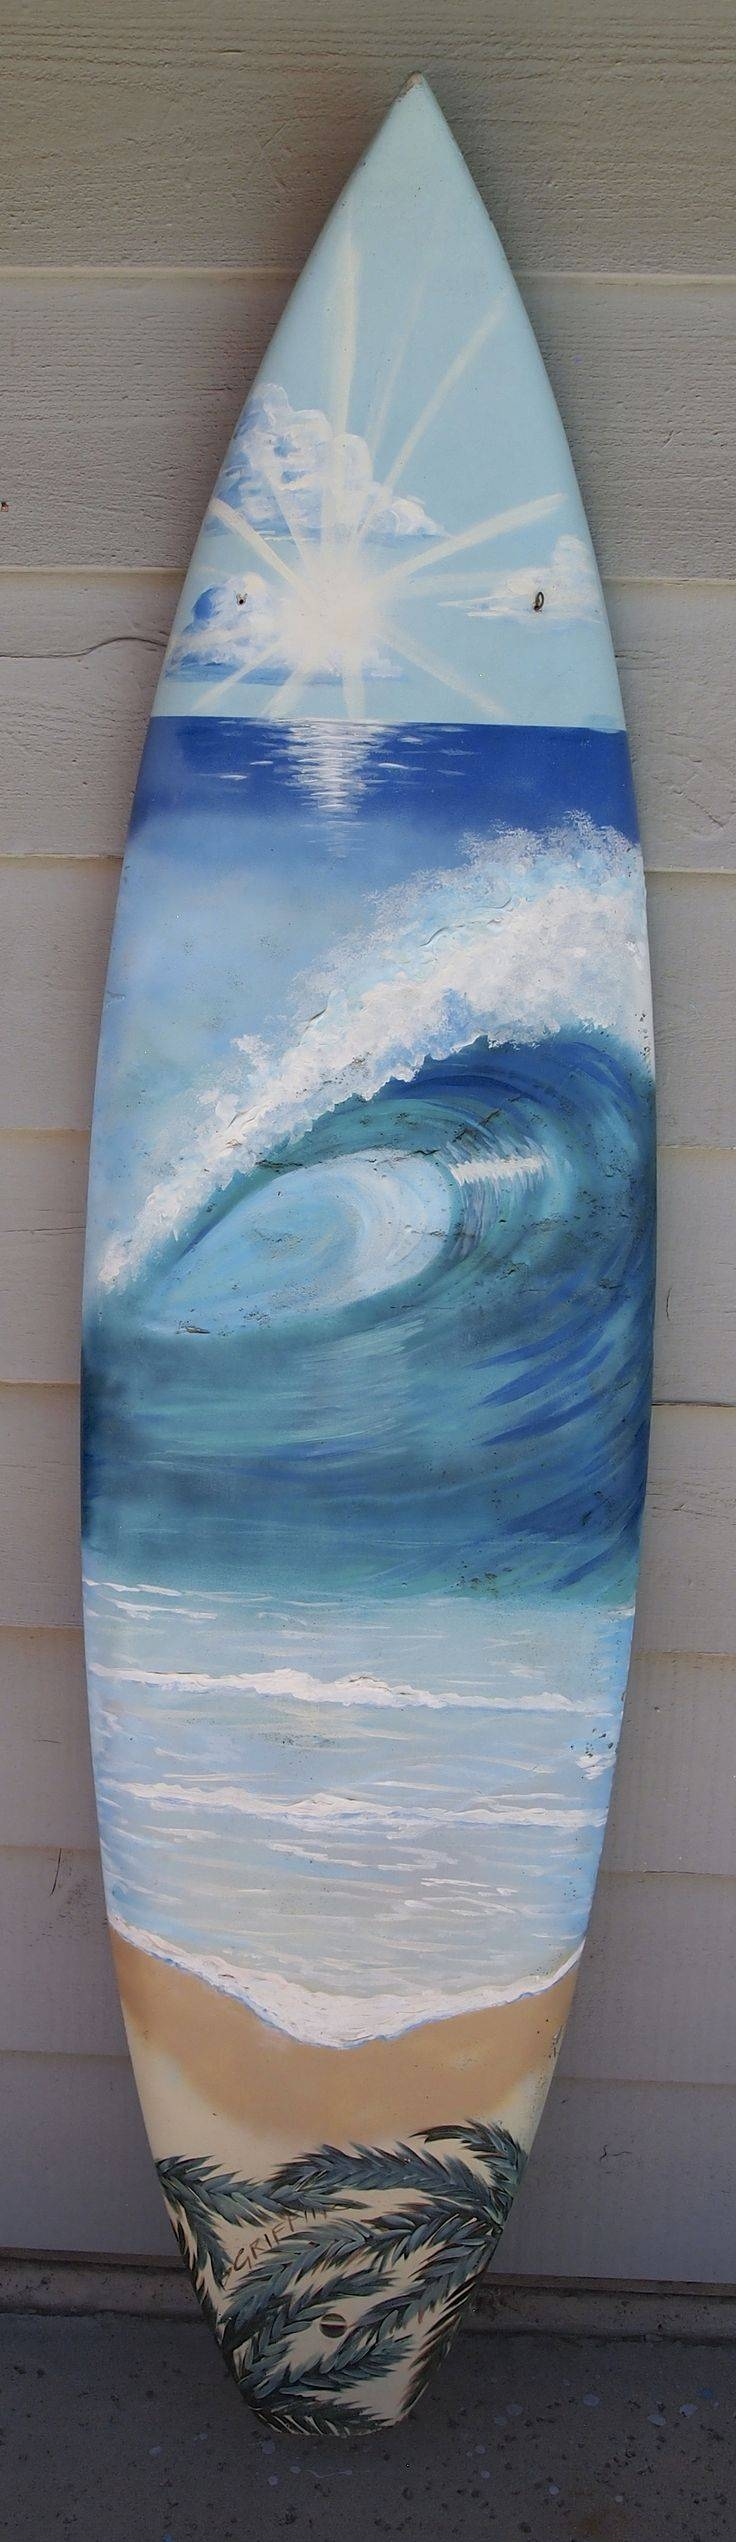 Best 25+ Surfboard Decor Ideas On Pinterest | Used Surfboards With Best And Newest Decorative Surfboard Wall Art (View 6 of 25)